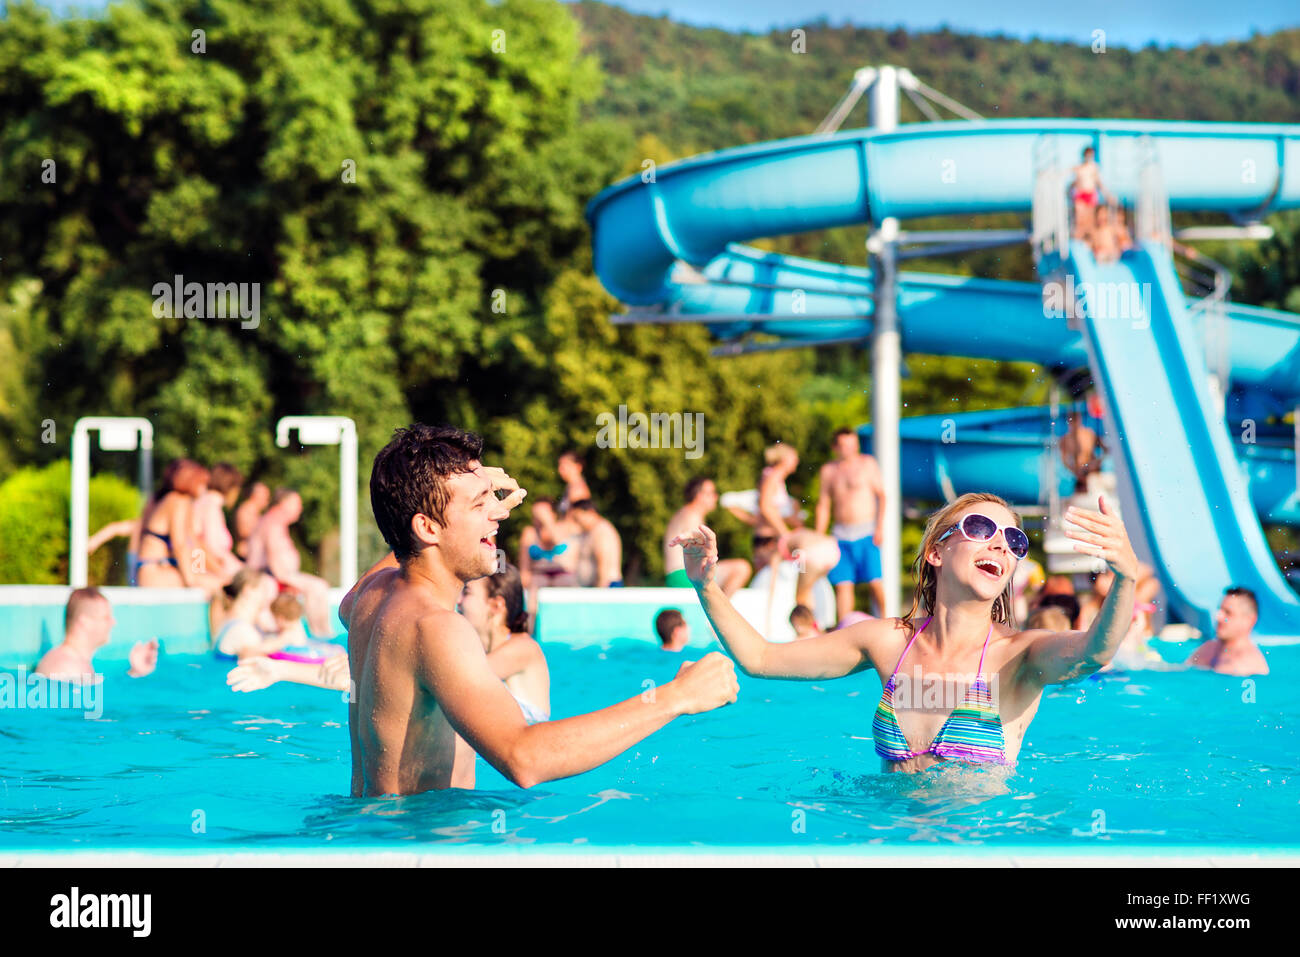 Young couple in swimming pool on sunny day. Water slide. - Stock Image